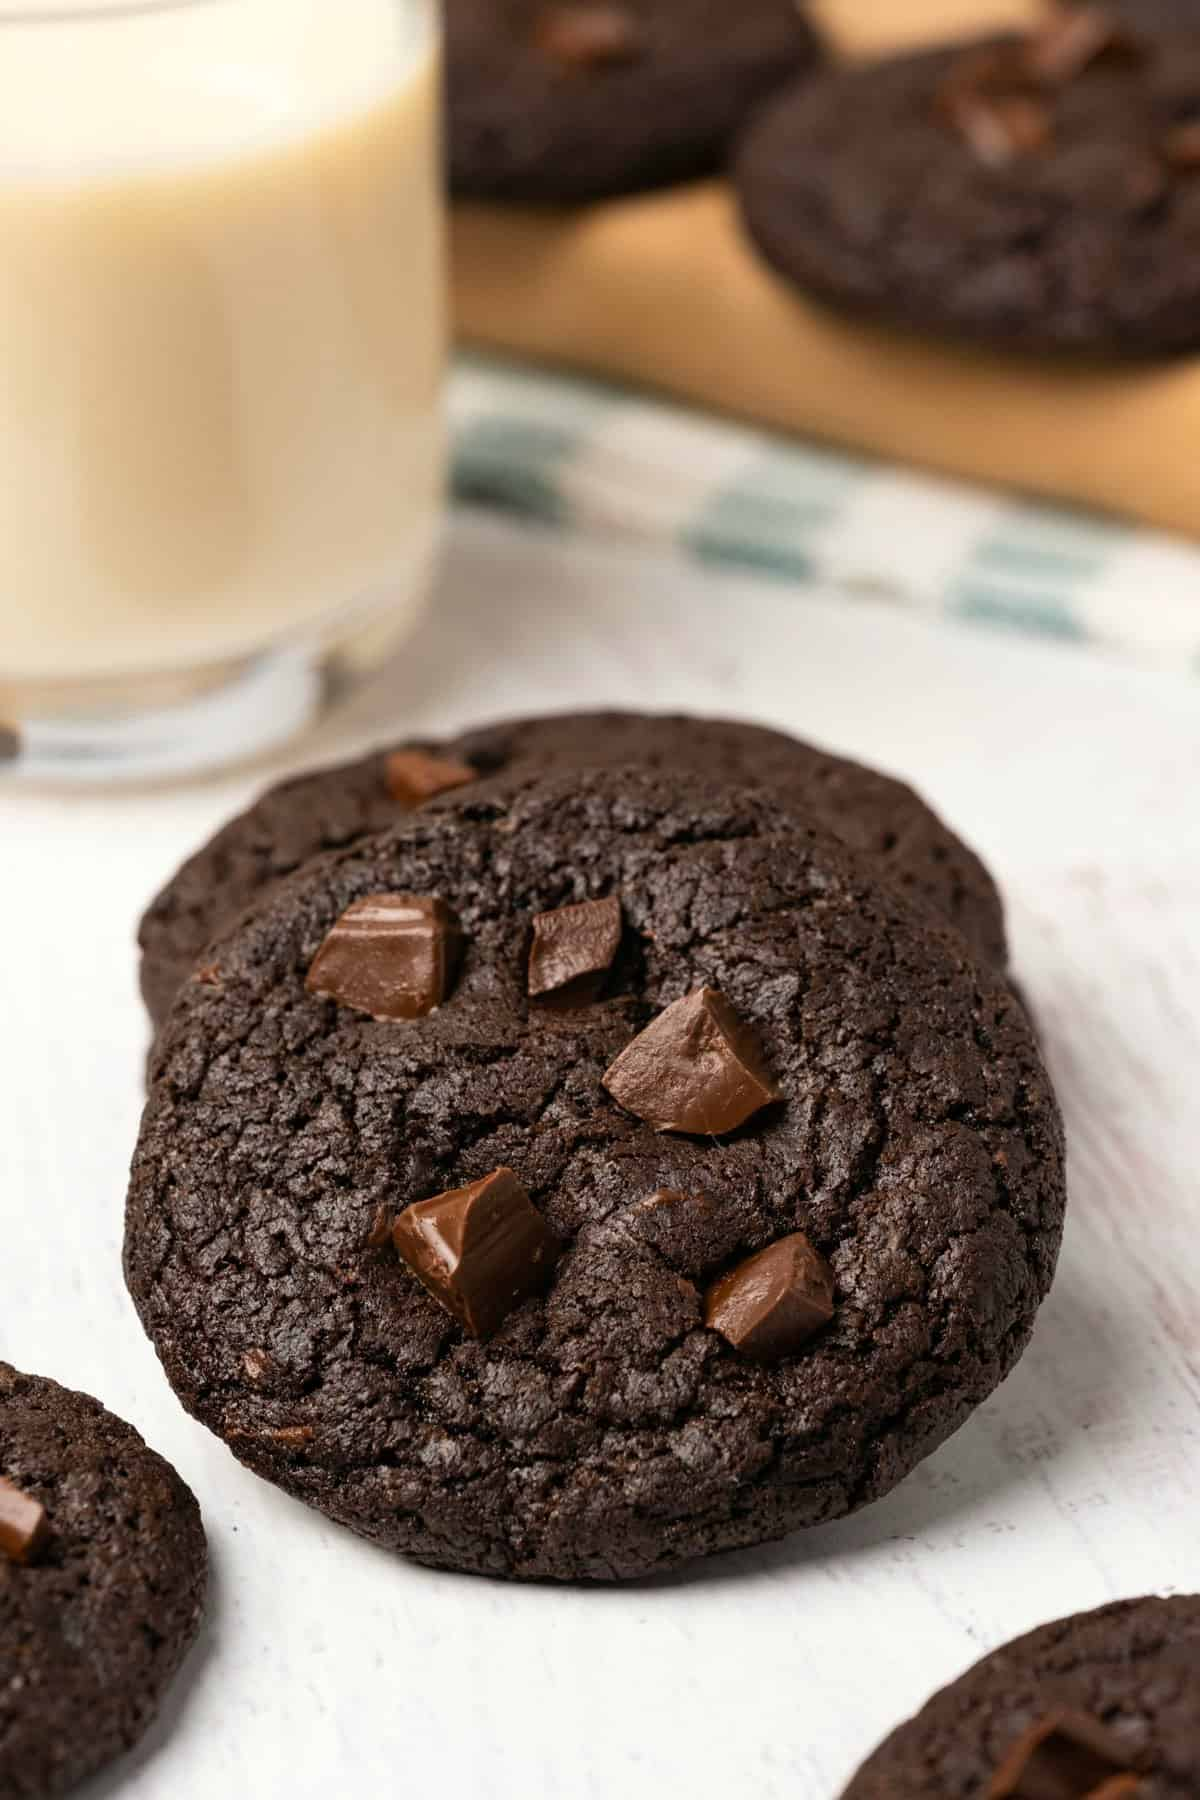 Chocolate cookies topped with chocolate chunks.